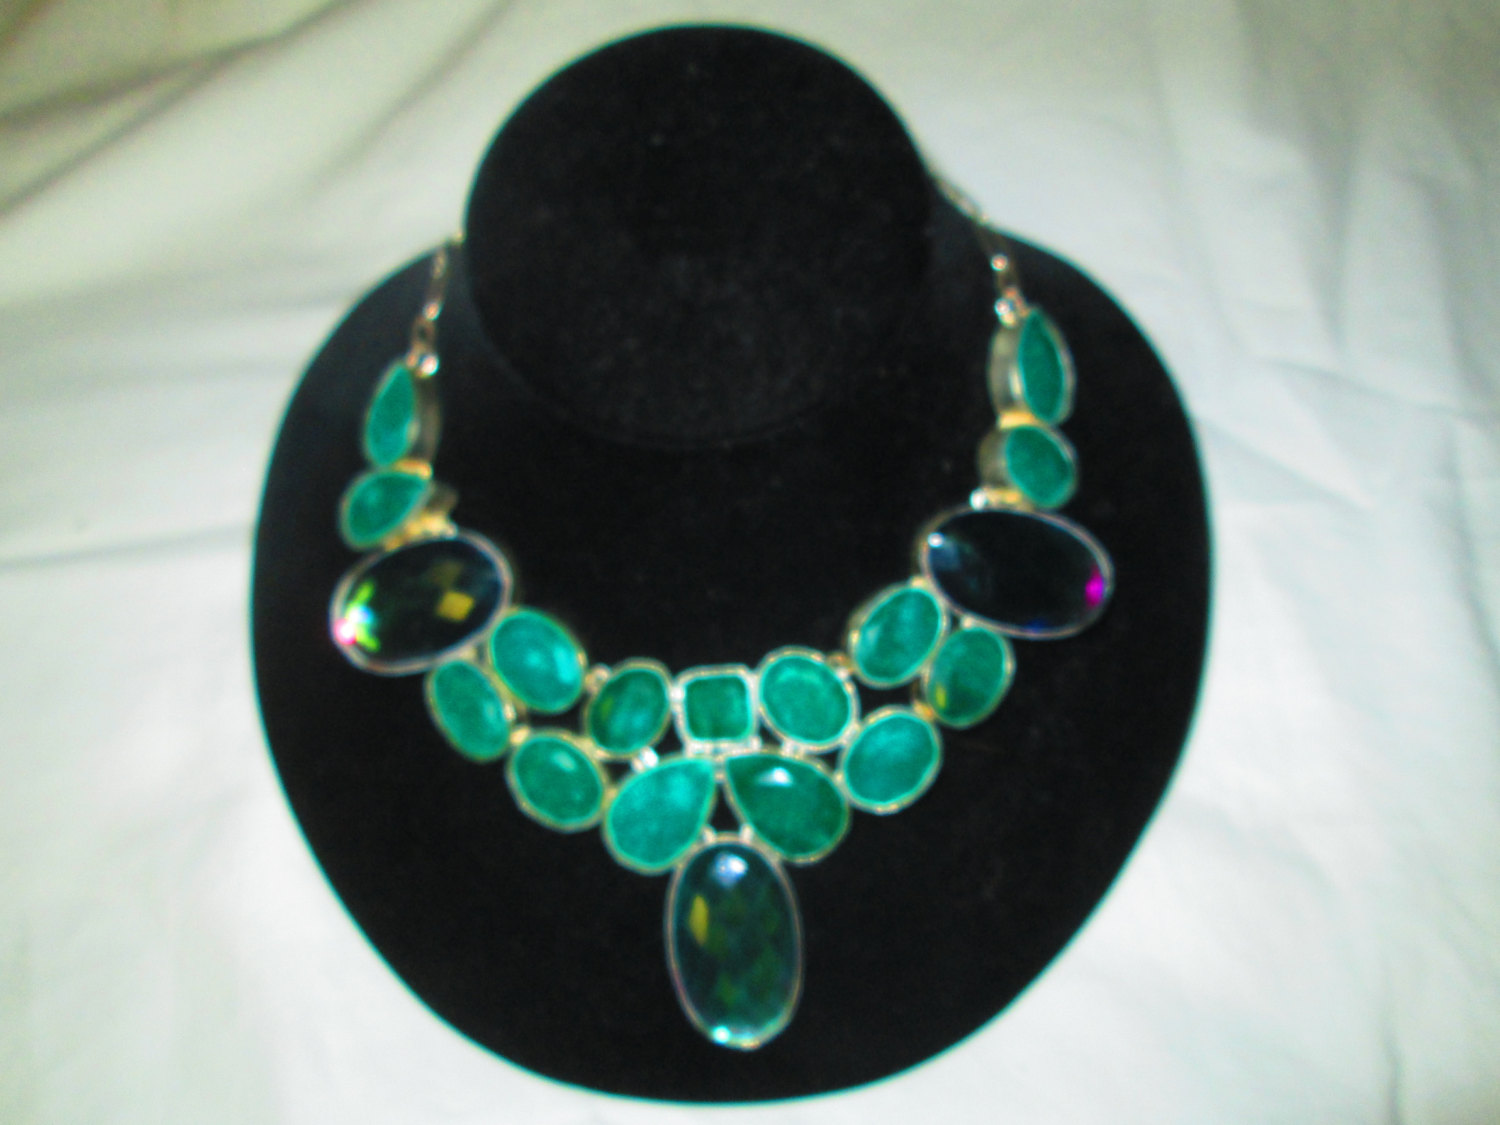 Fantastic Sterling Silver Coated Large Necklace Real Stones Adjustable Sizes Rainbow Topaz Stones